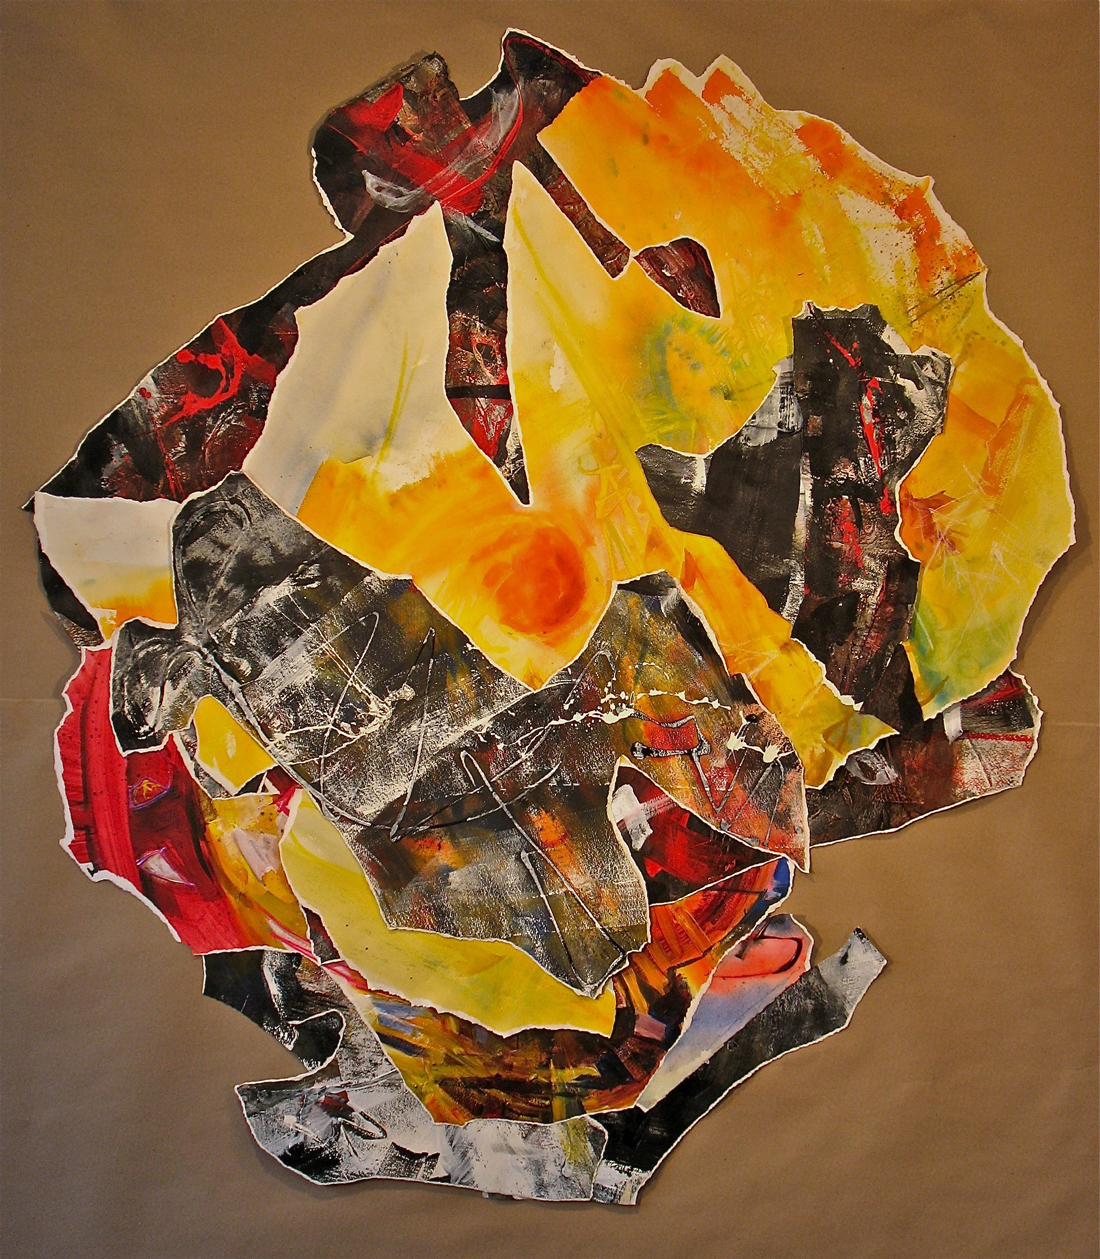 Negative Space, collage, mounted on board.